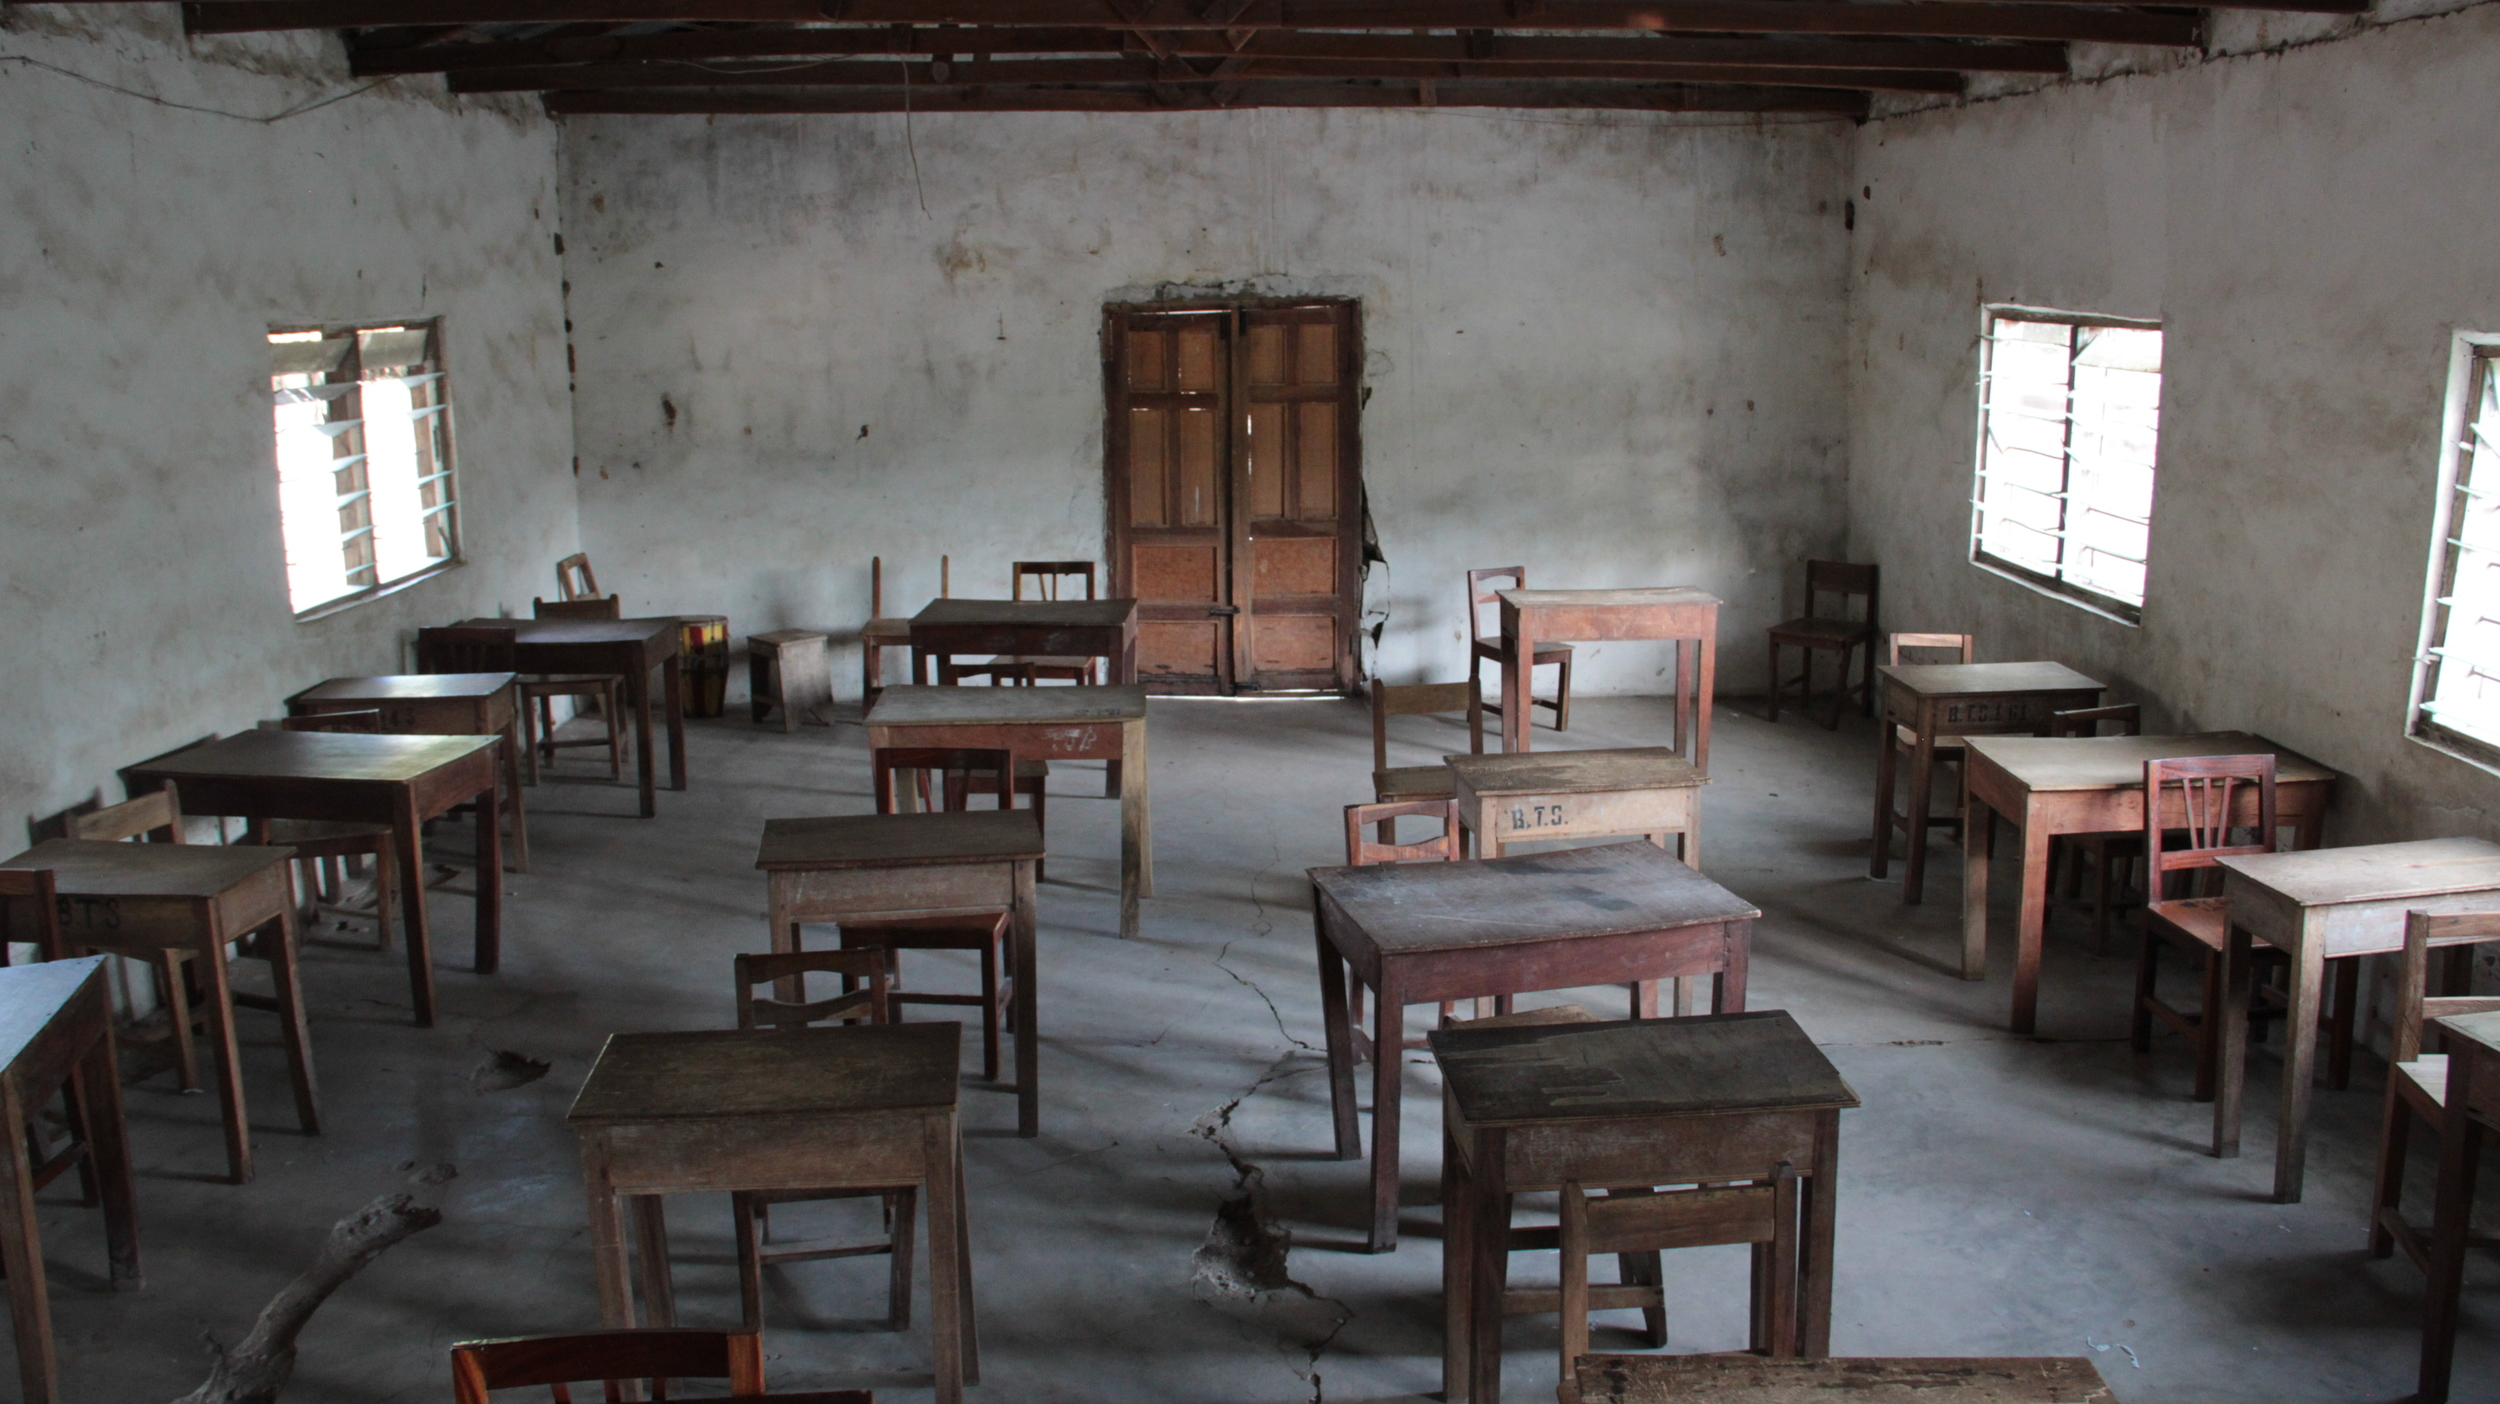 lecture hall in Old Chapel Building